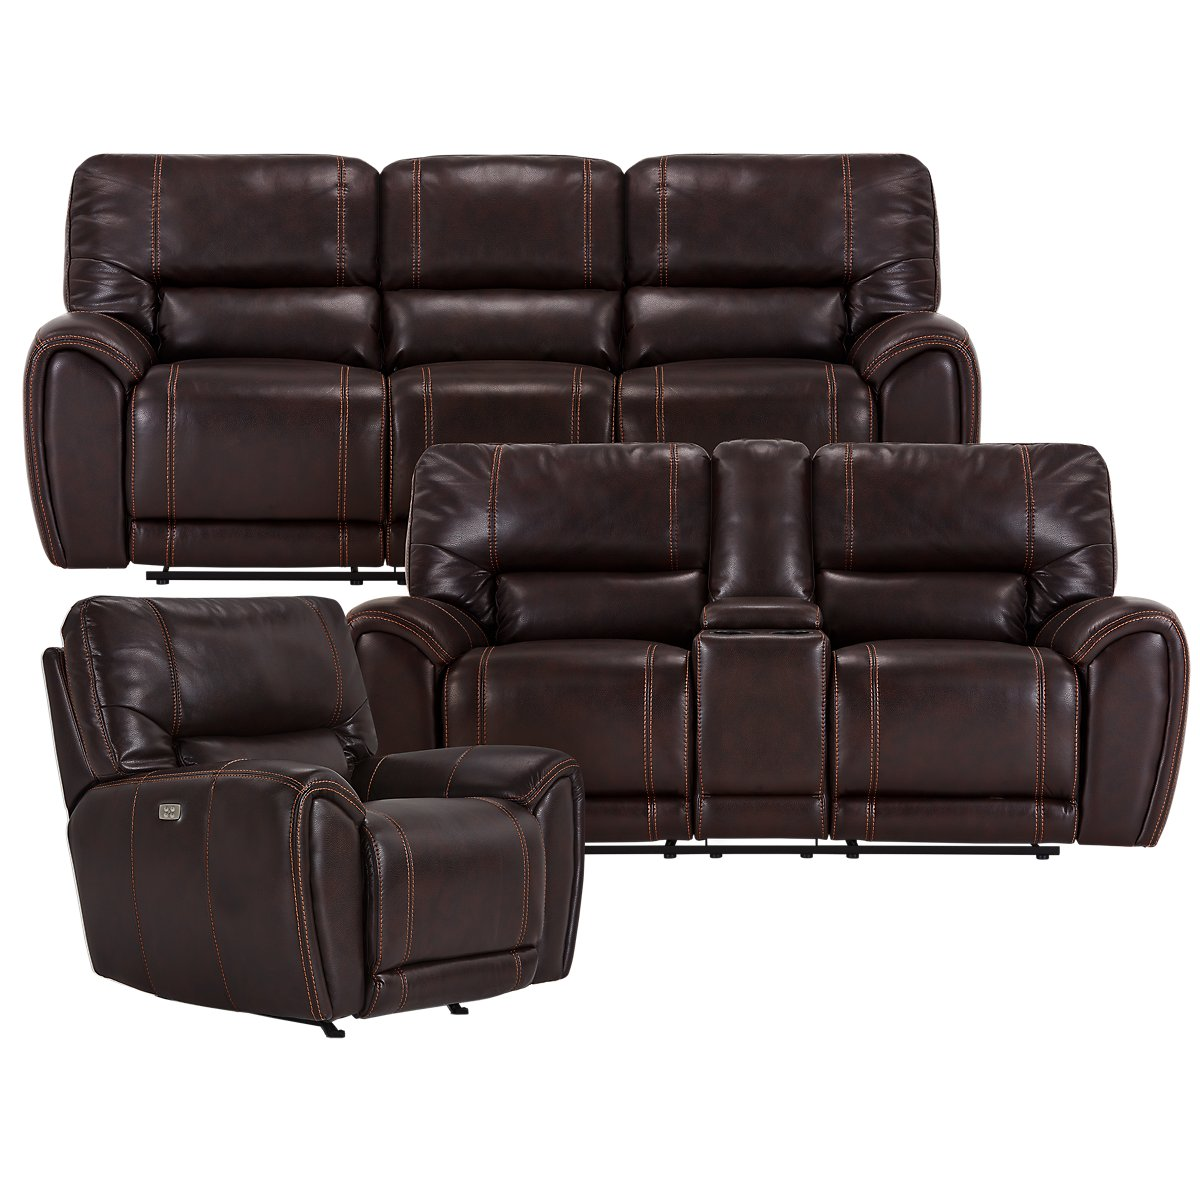 City Furniture Bailey Dark Brown Microfiber Power